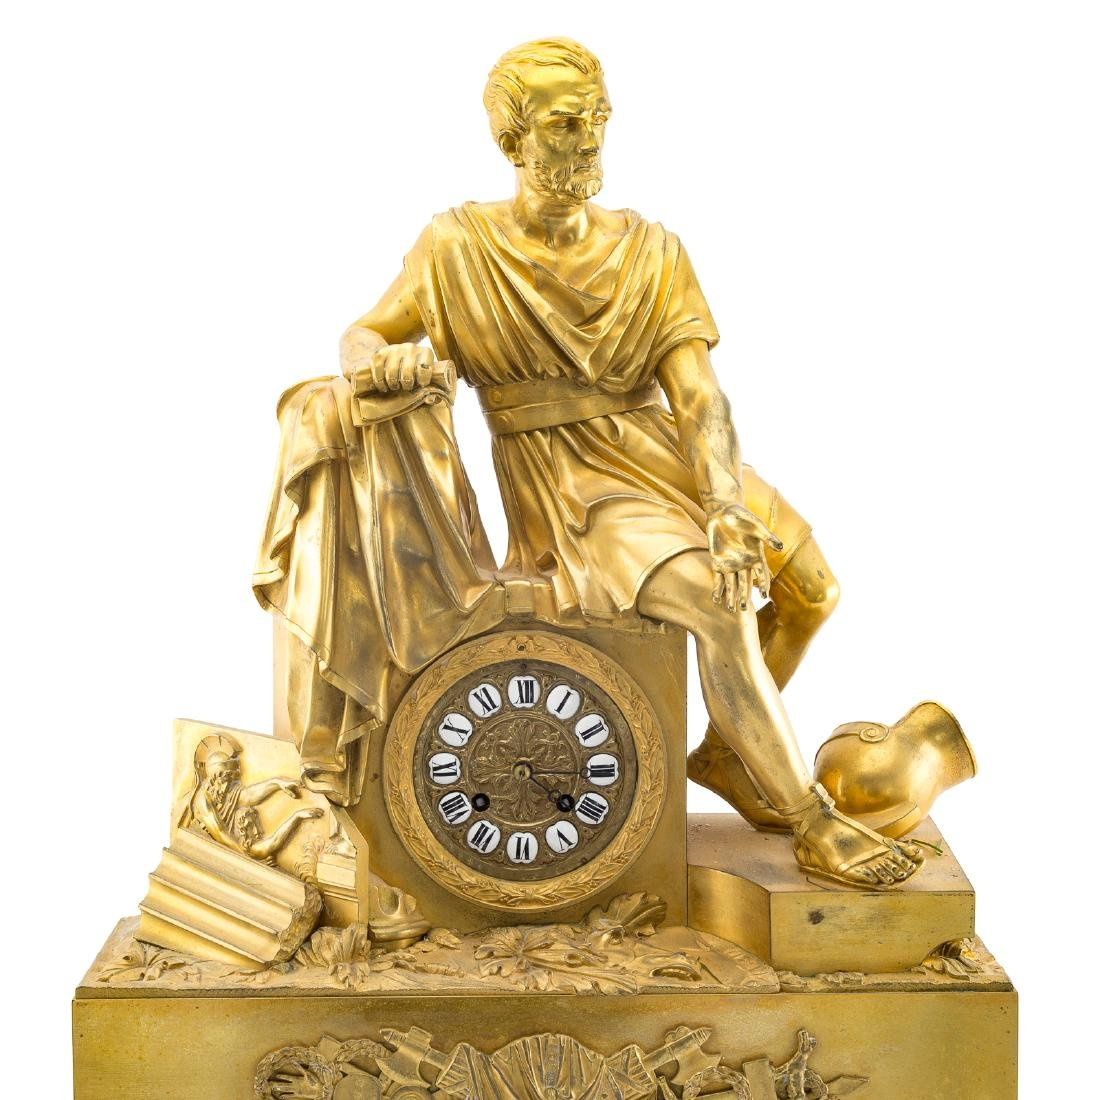 French Empire gilt-bronze figural mantel clock - 2